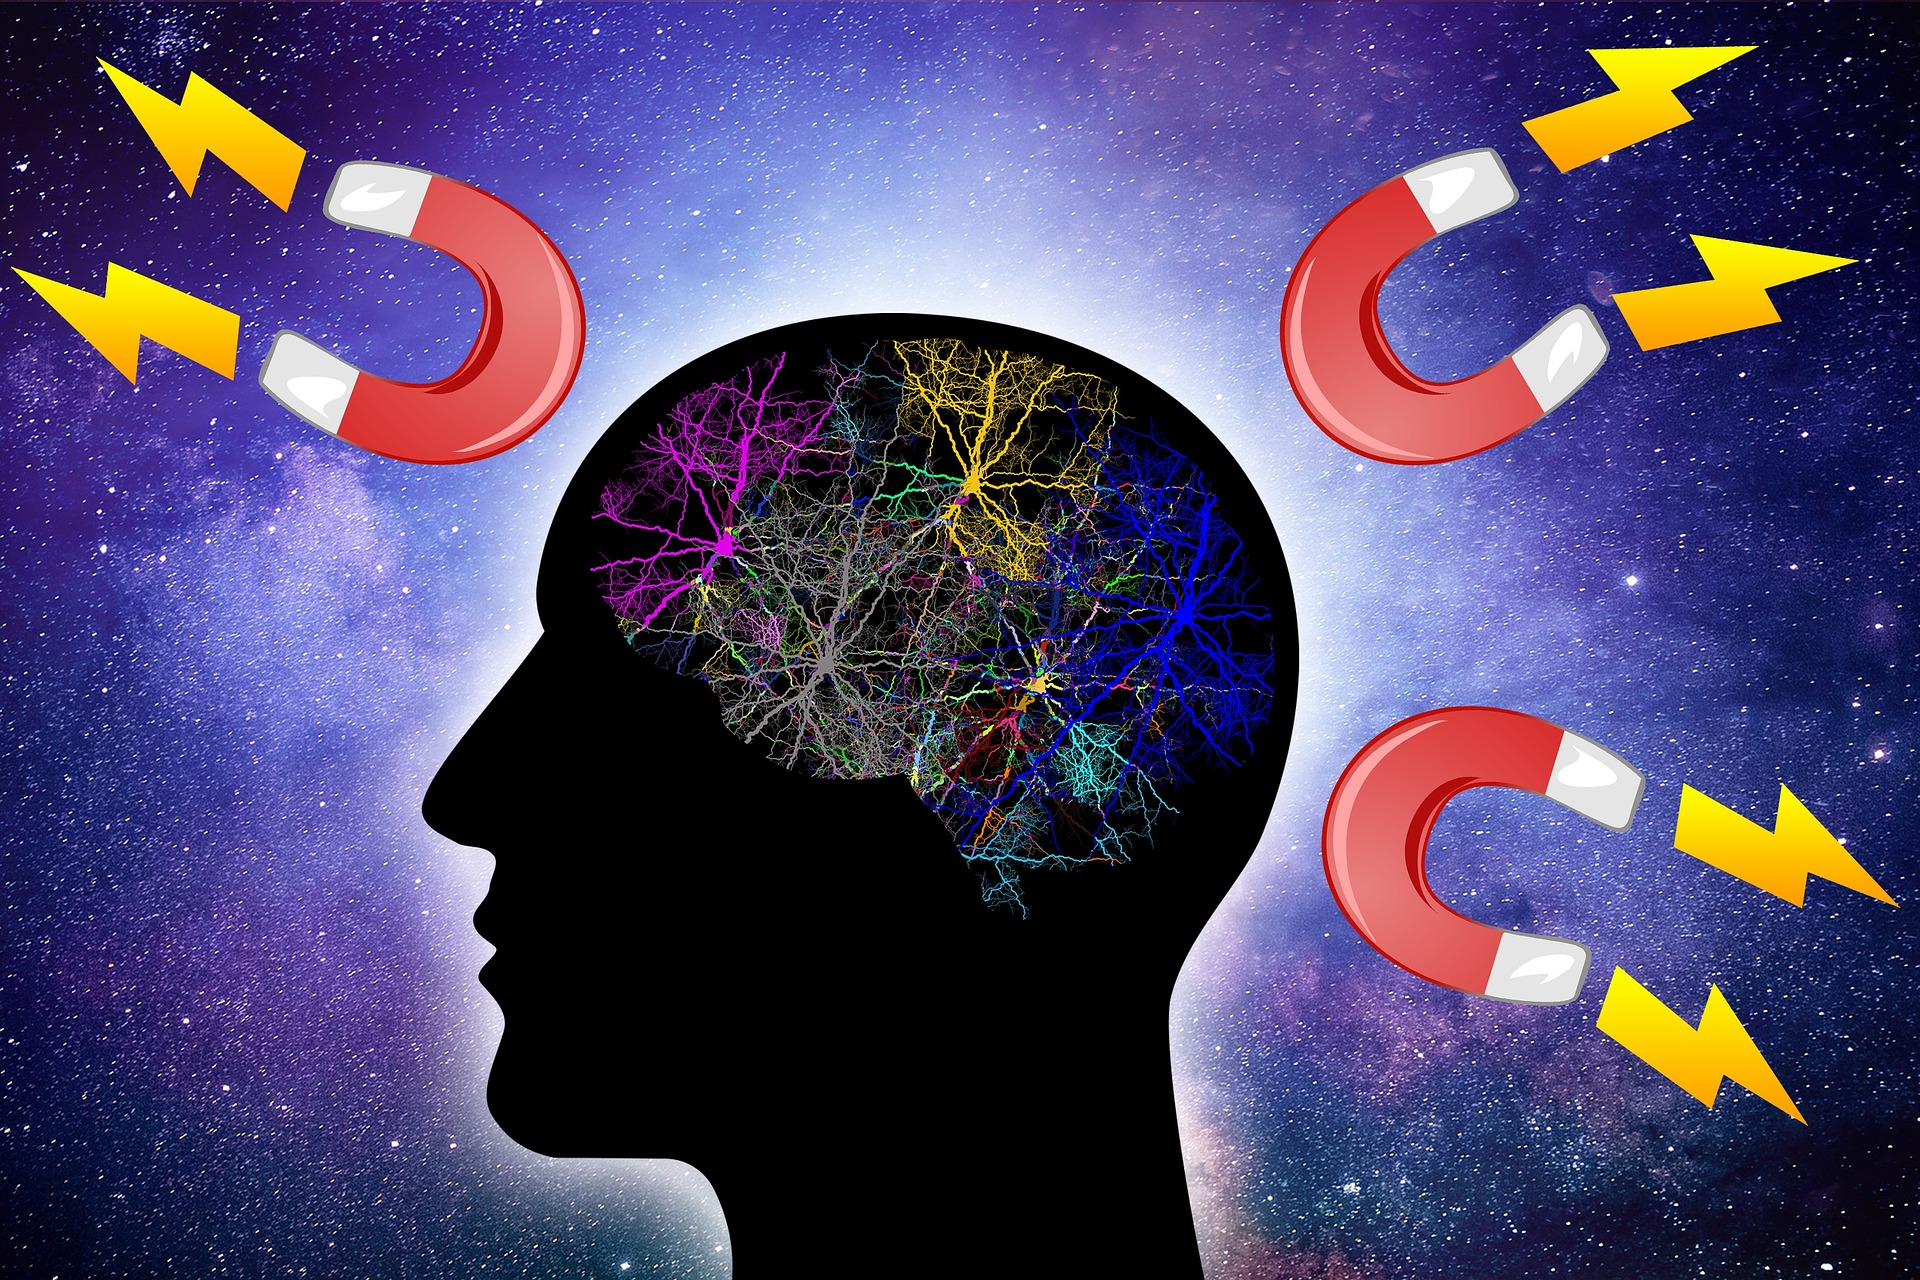 How To Quickly Manifest Anything in 8 Easy Steps